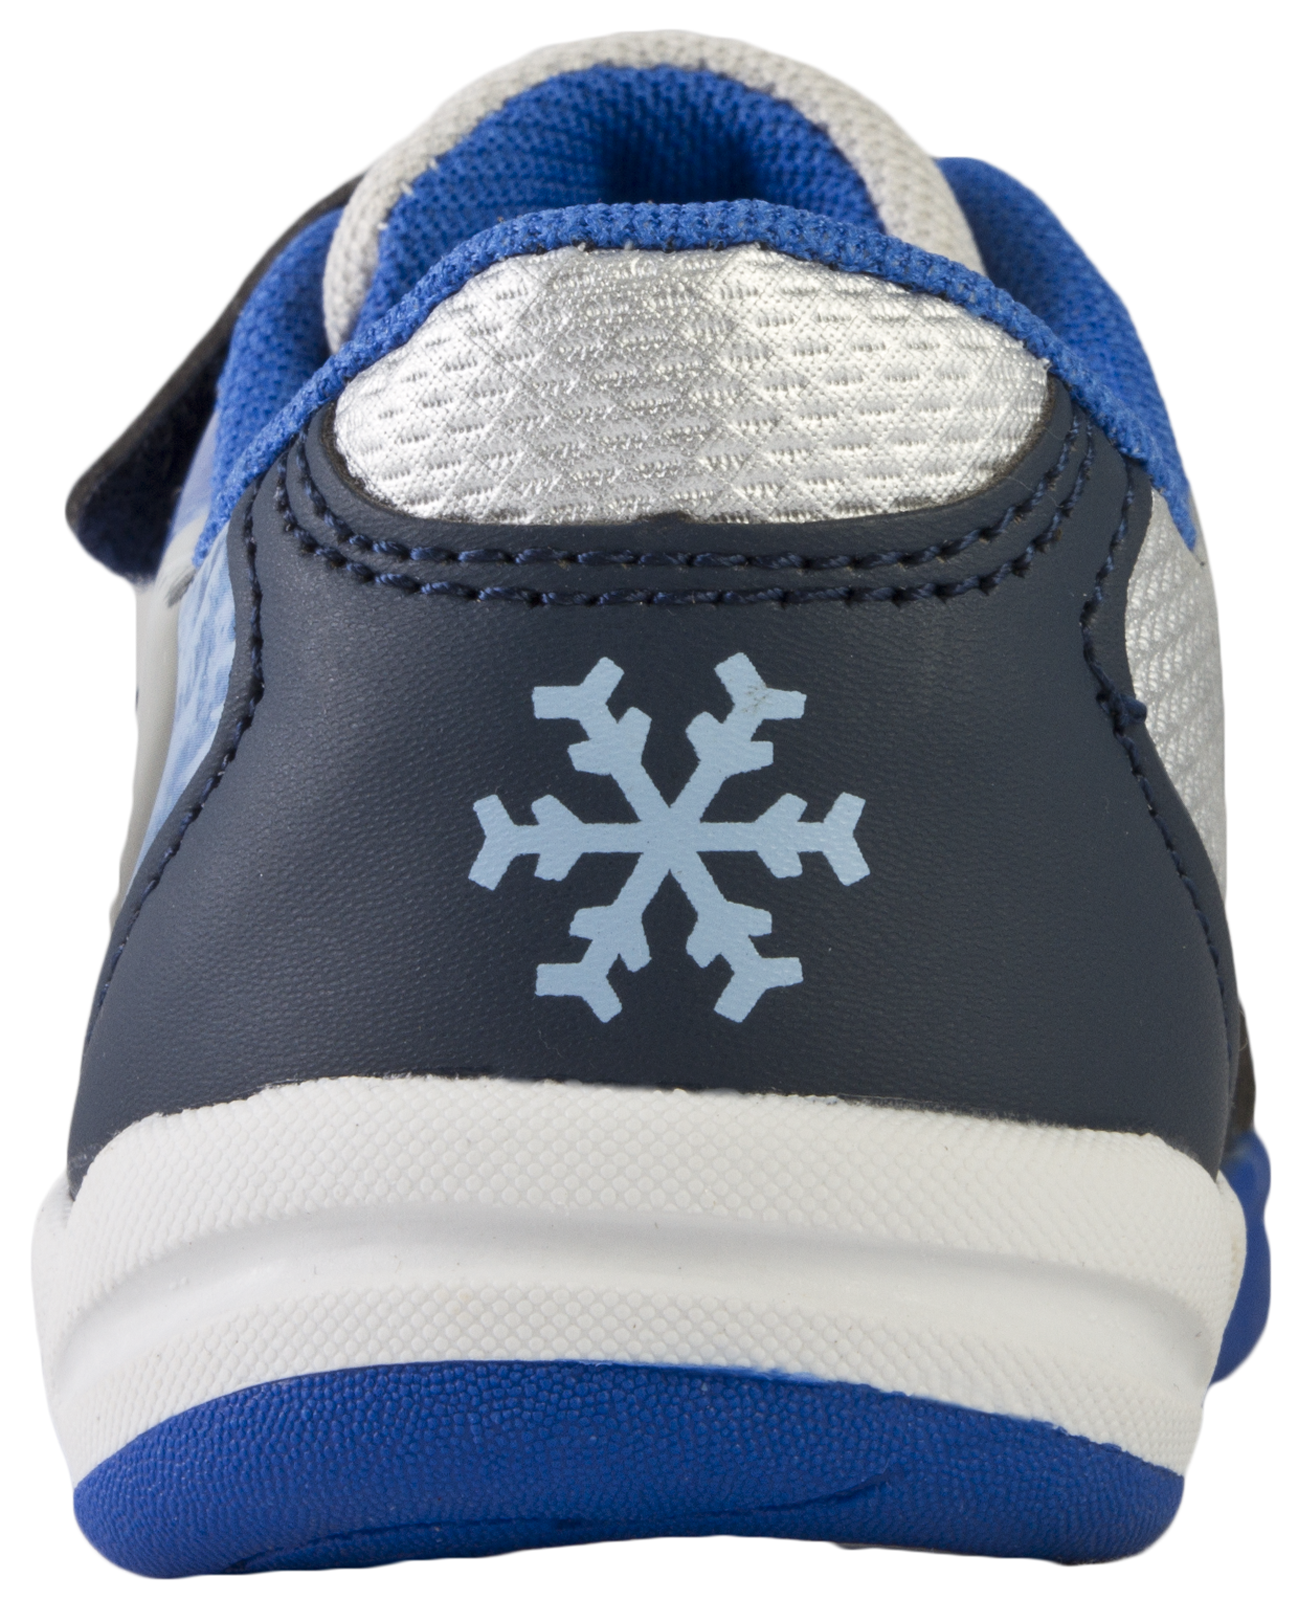 Boys-Disney-Frozen-Olaf-Skate-Trainers-Sports-Shoes-Kids-Flat-Casual-Pumps-Size